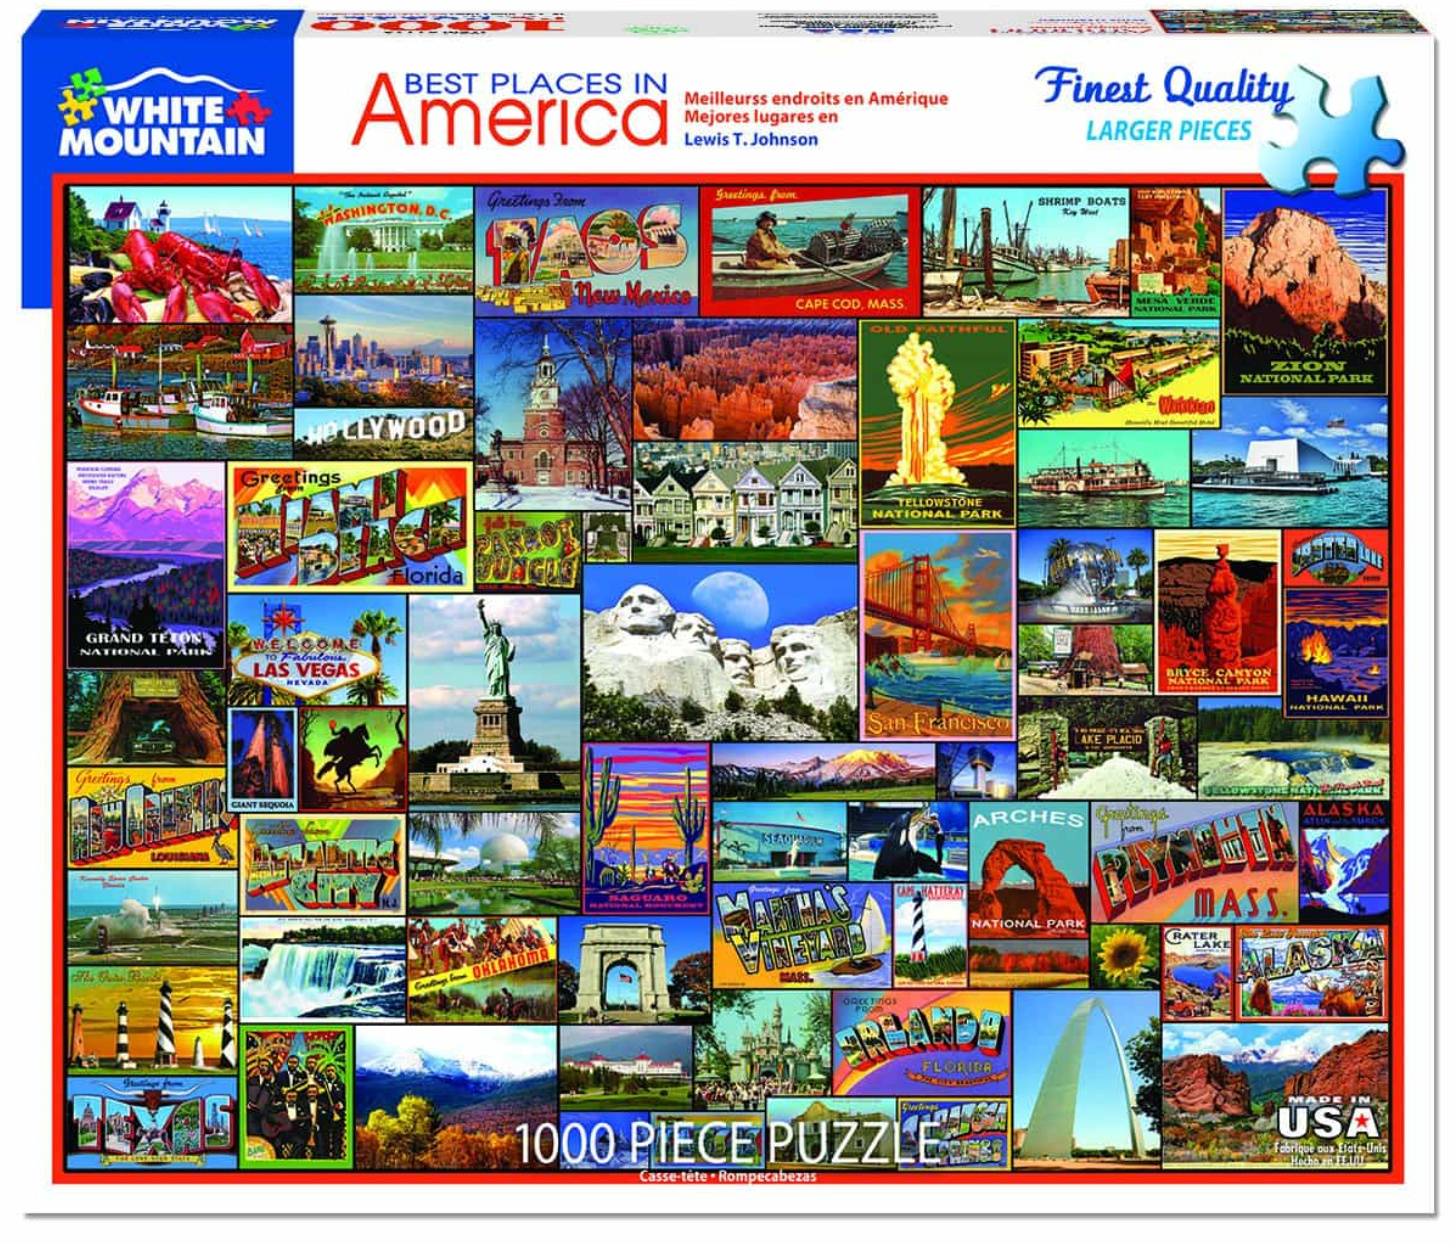 Best Places in America (1119pz) - 1000 Piece Jigsaw Puzzle